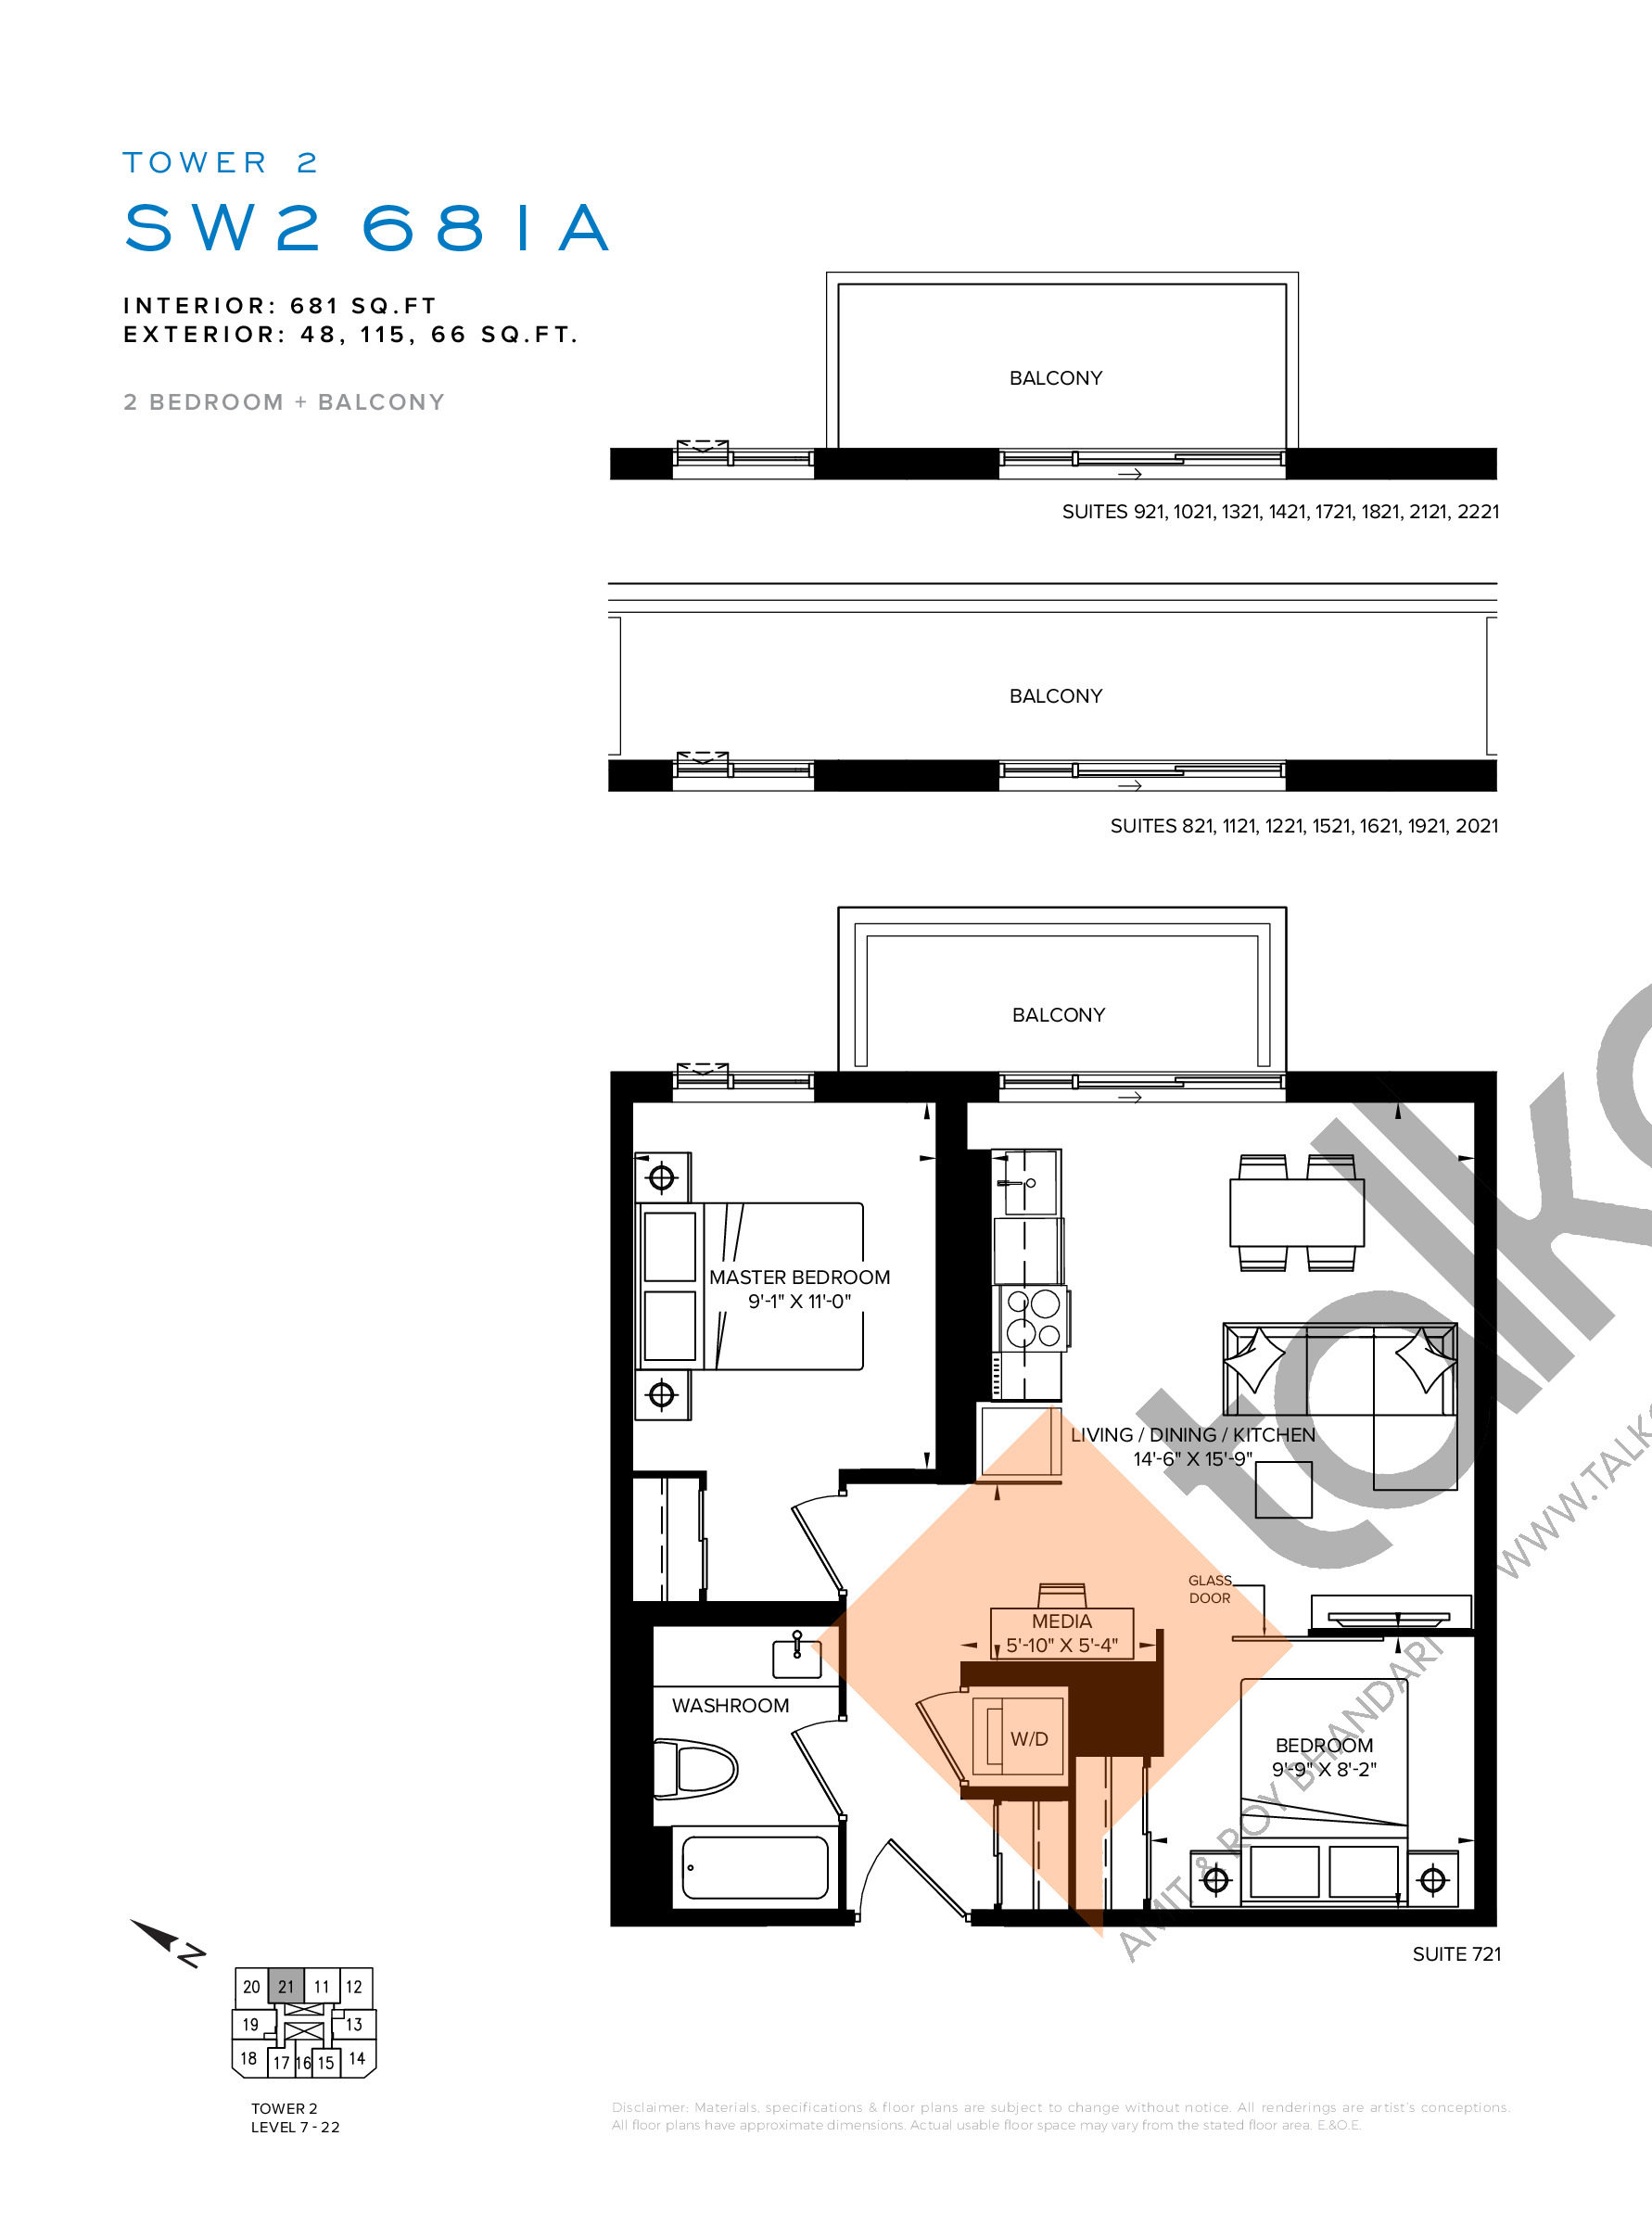 SW2 681A Floor Plan at SXSW Tower 2 Condos (SXSW2) - 681 sq.ft